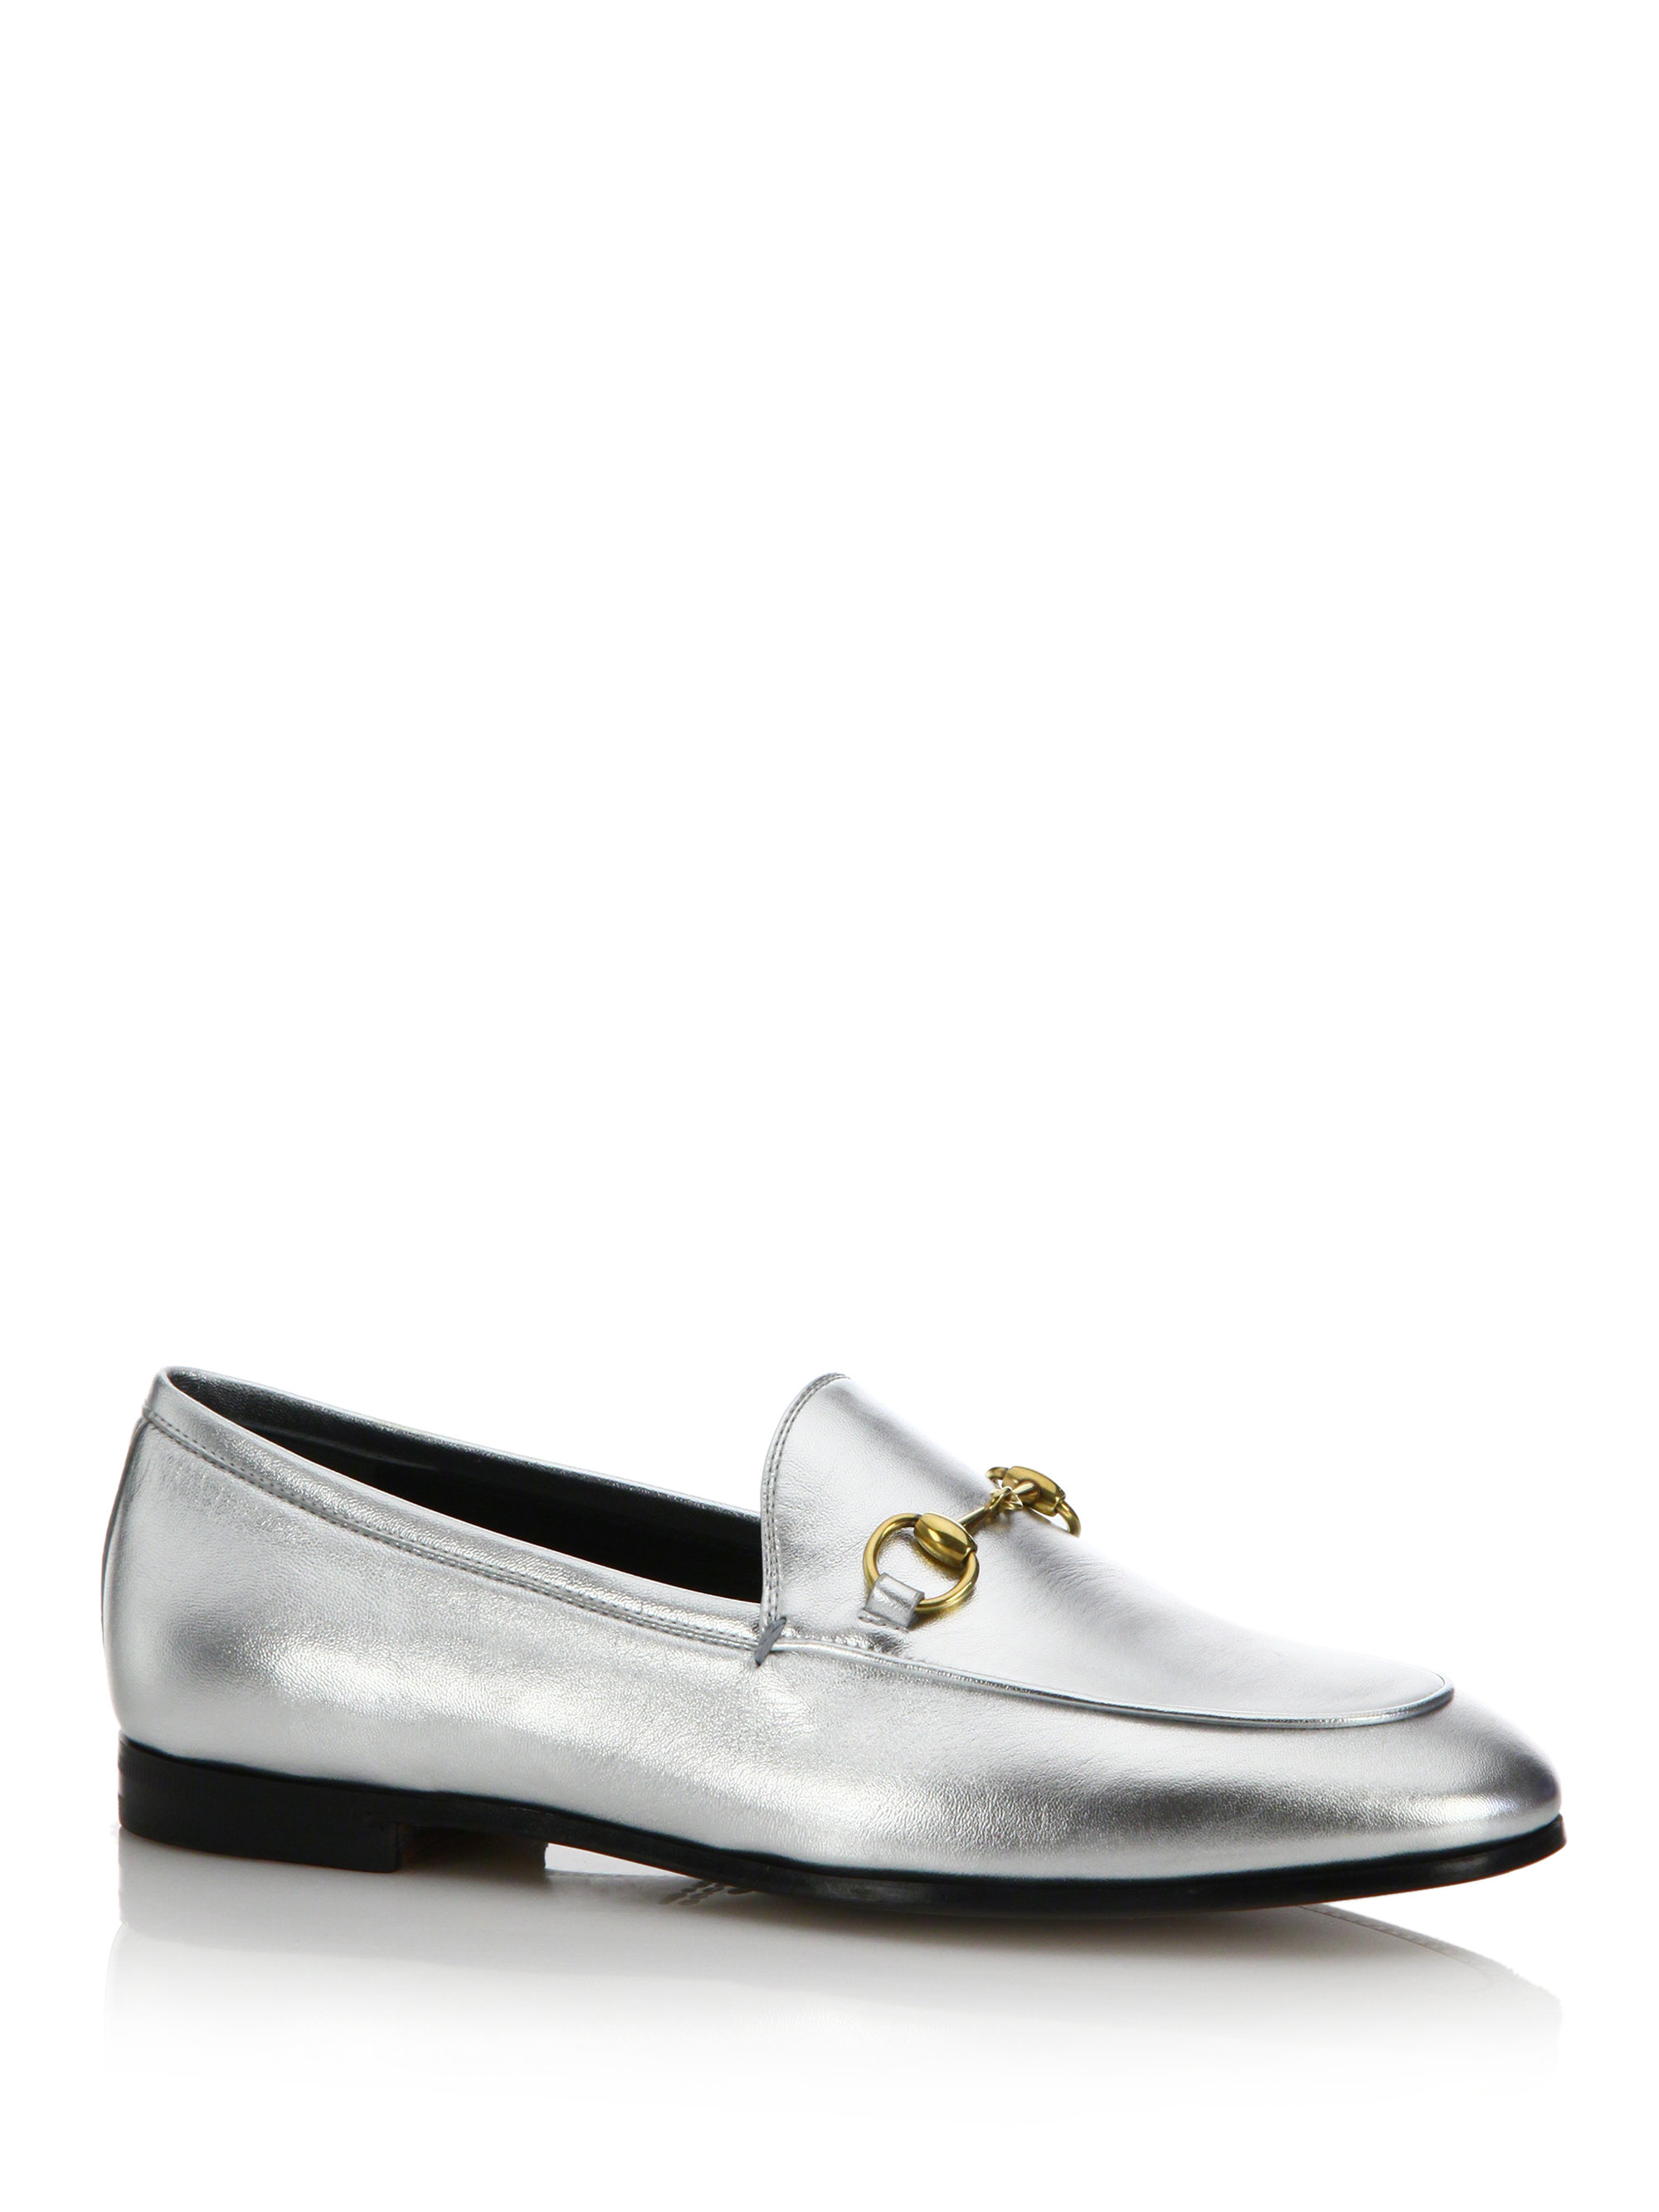 Silver Chiara ferragni shoes